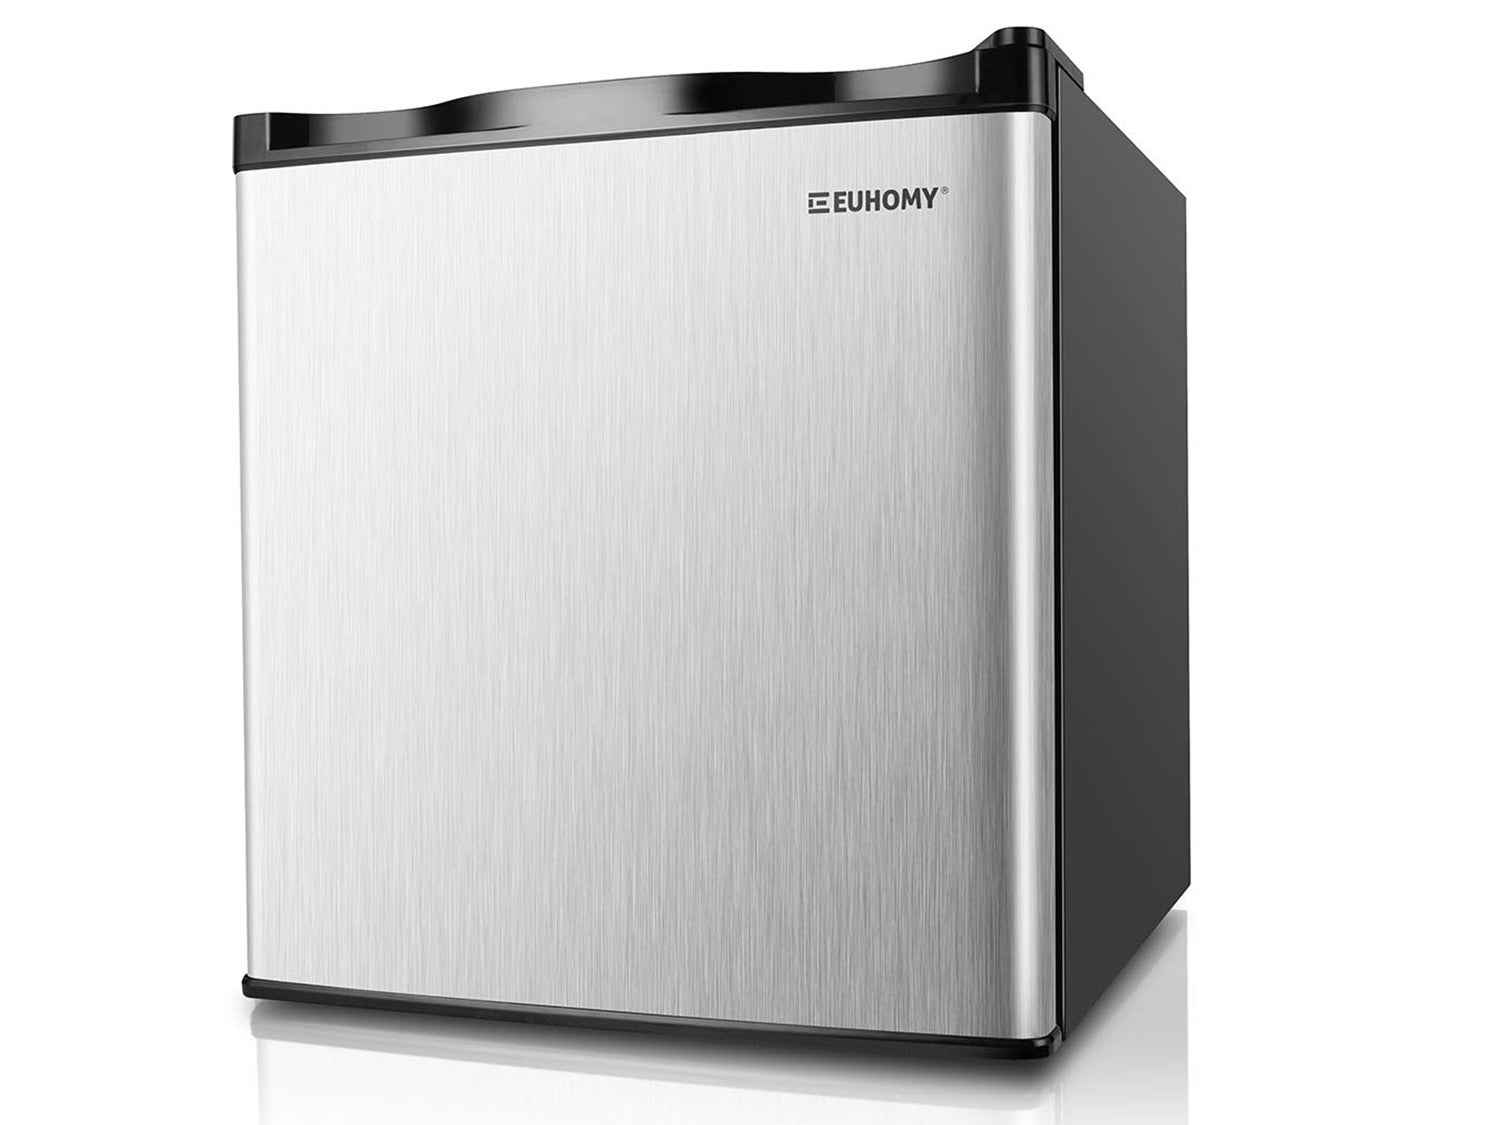 Euhomy Mini Freezer